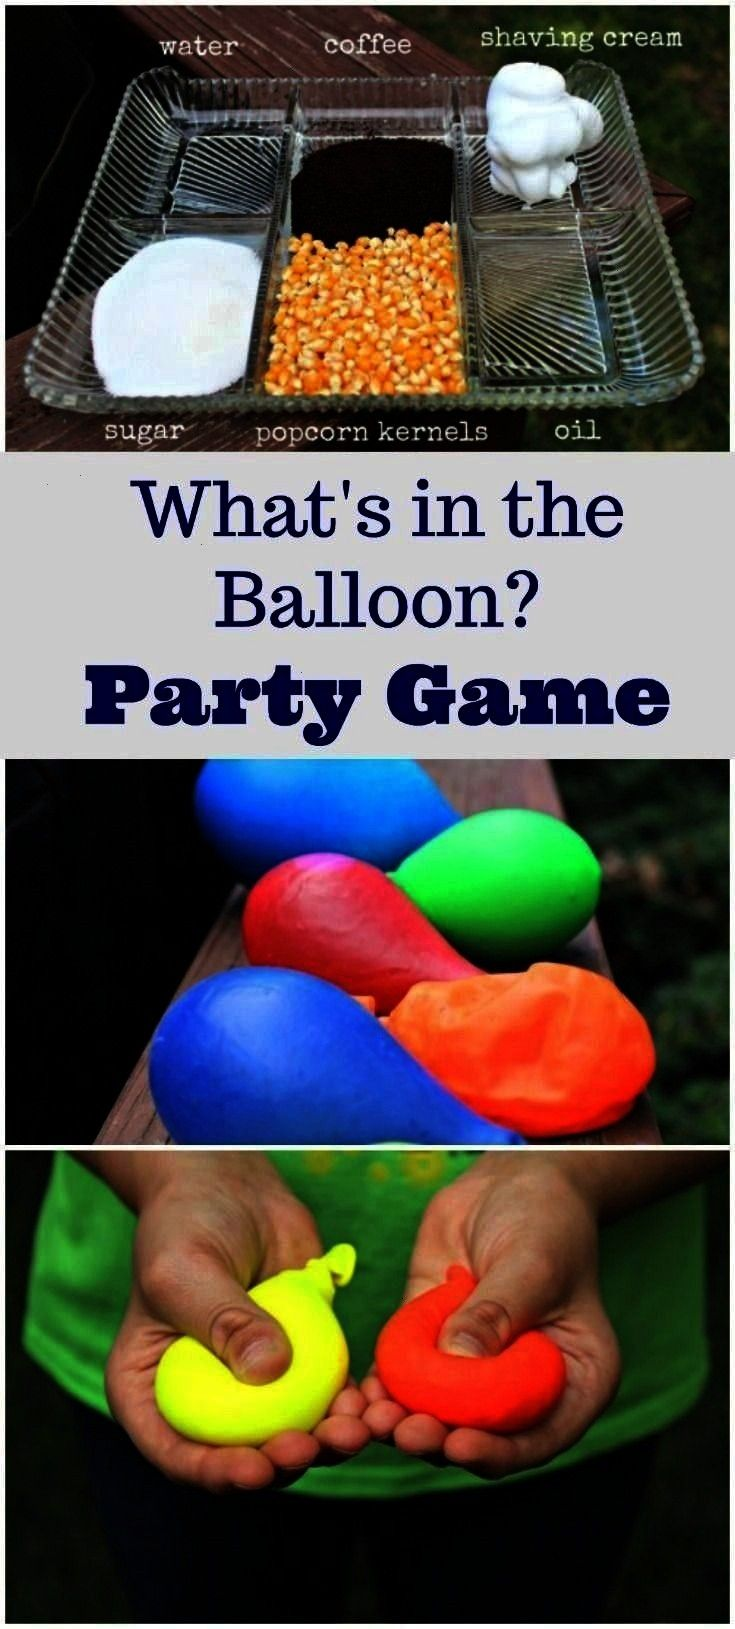 Mystery Sensory Balloons  Informations About Party Games for Kids Mystery Sensory Balloons  Pin You can easily use my profile to examine different pin types Party Games f...